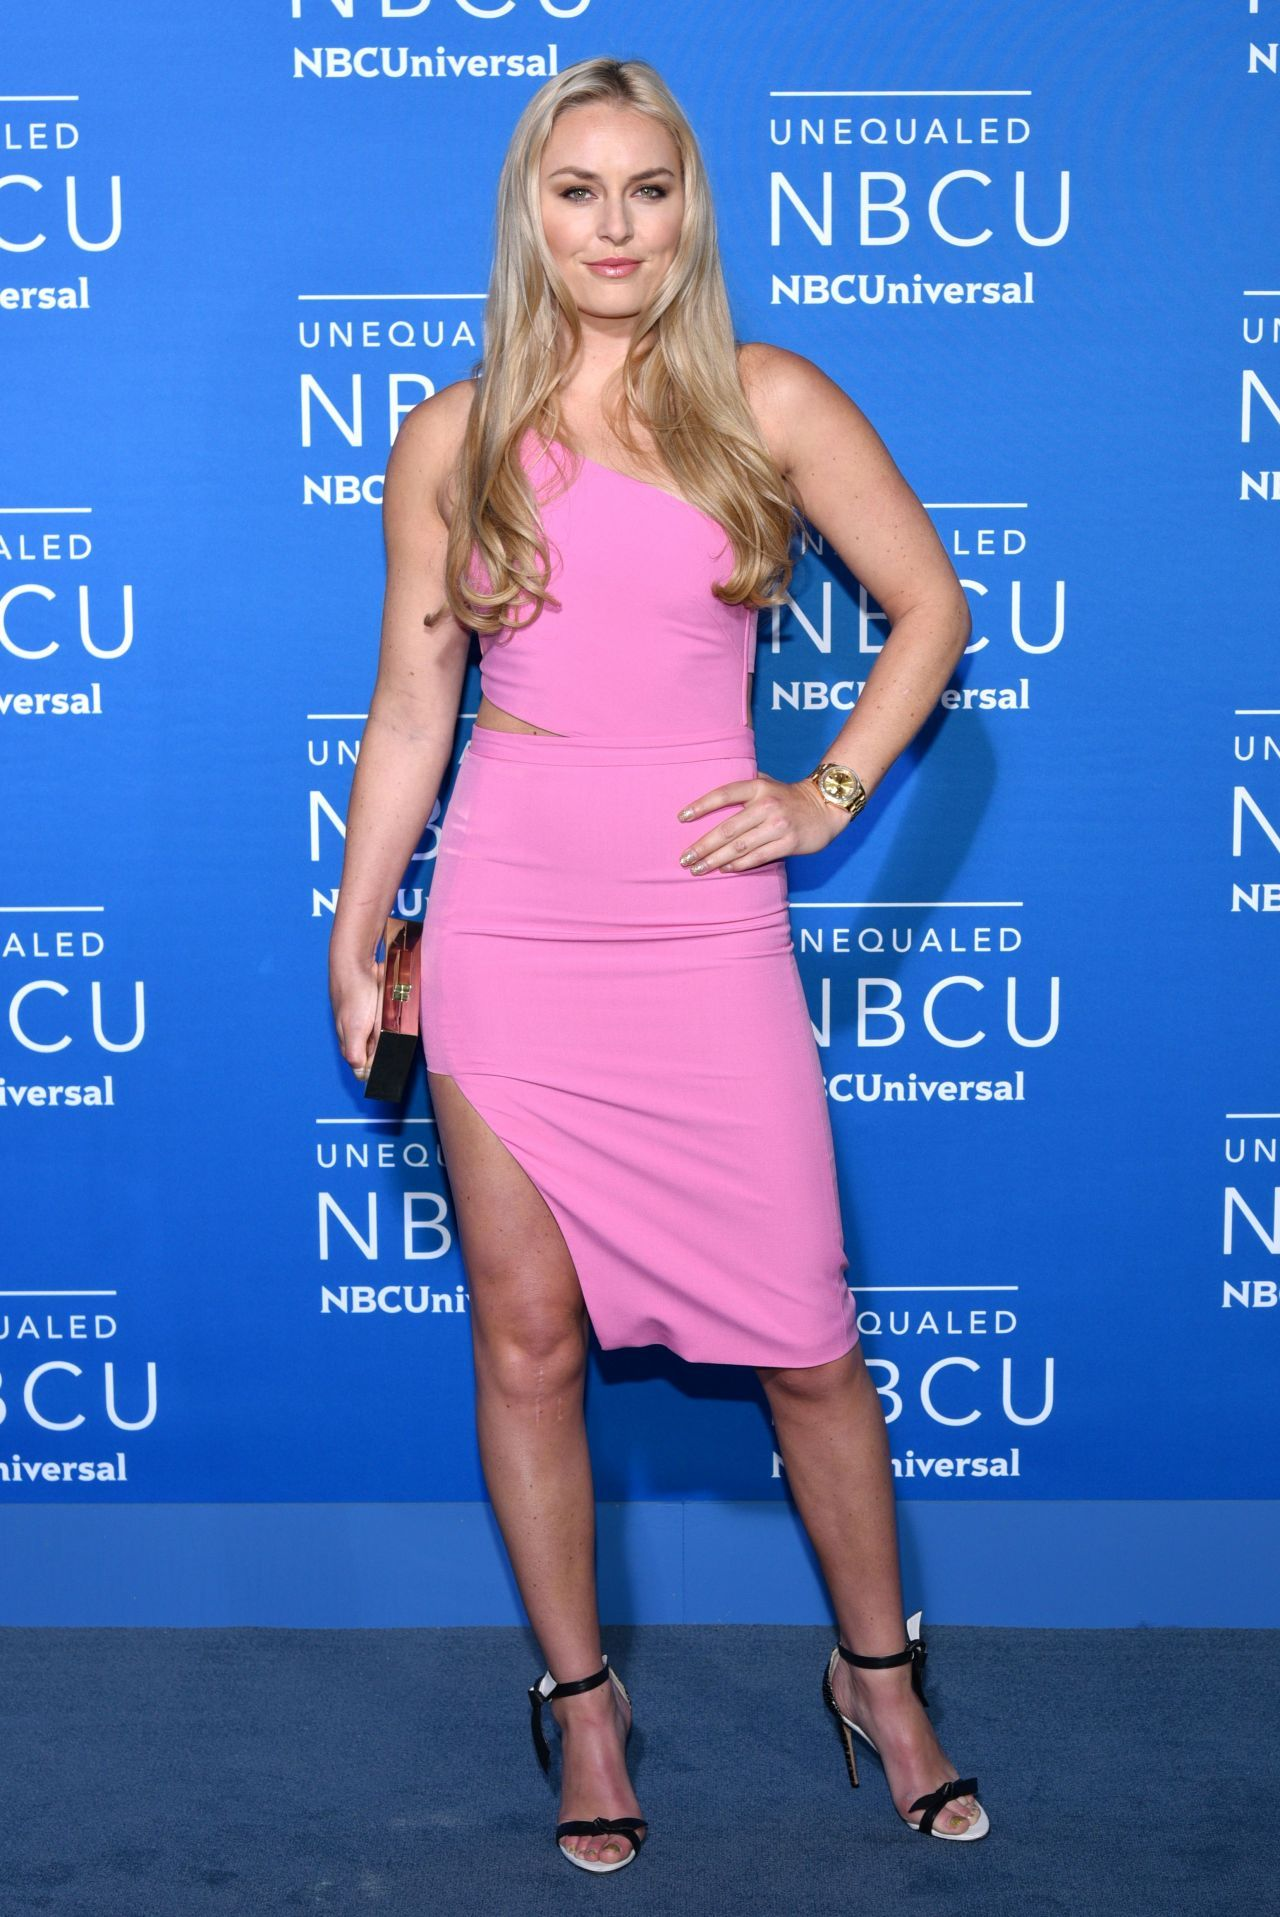 Lindsey Vonn >> Lindsey Vonn At The Nbcuniversal Upfront New York City 15 May